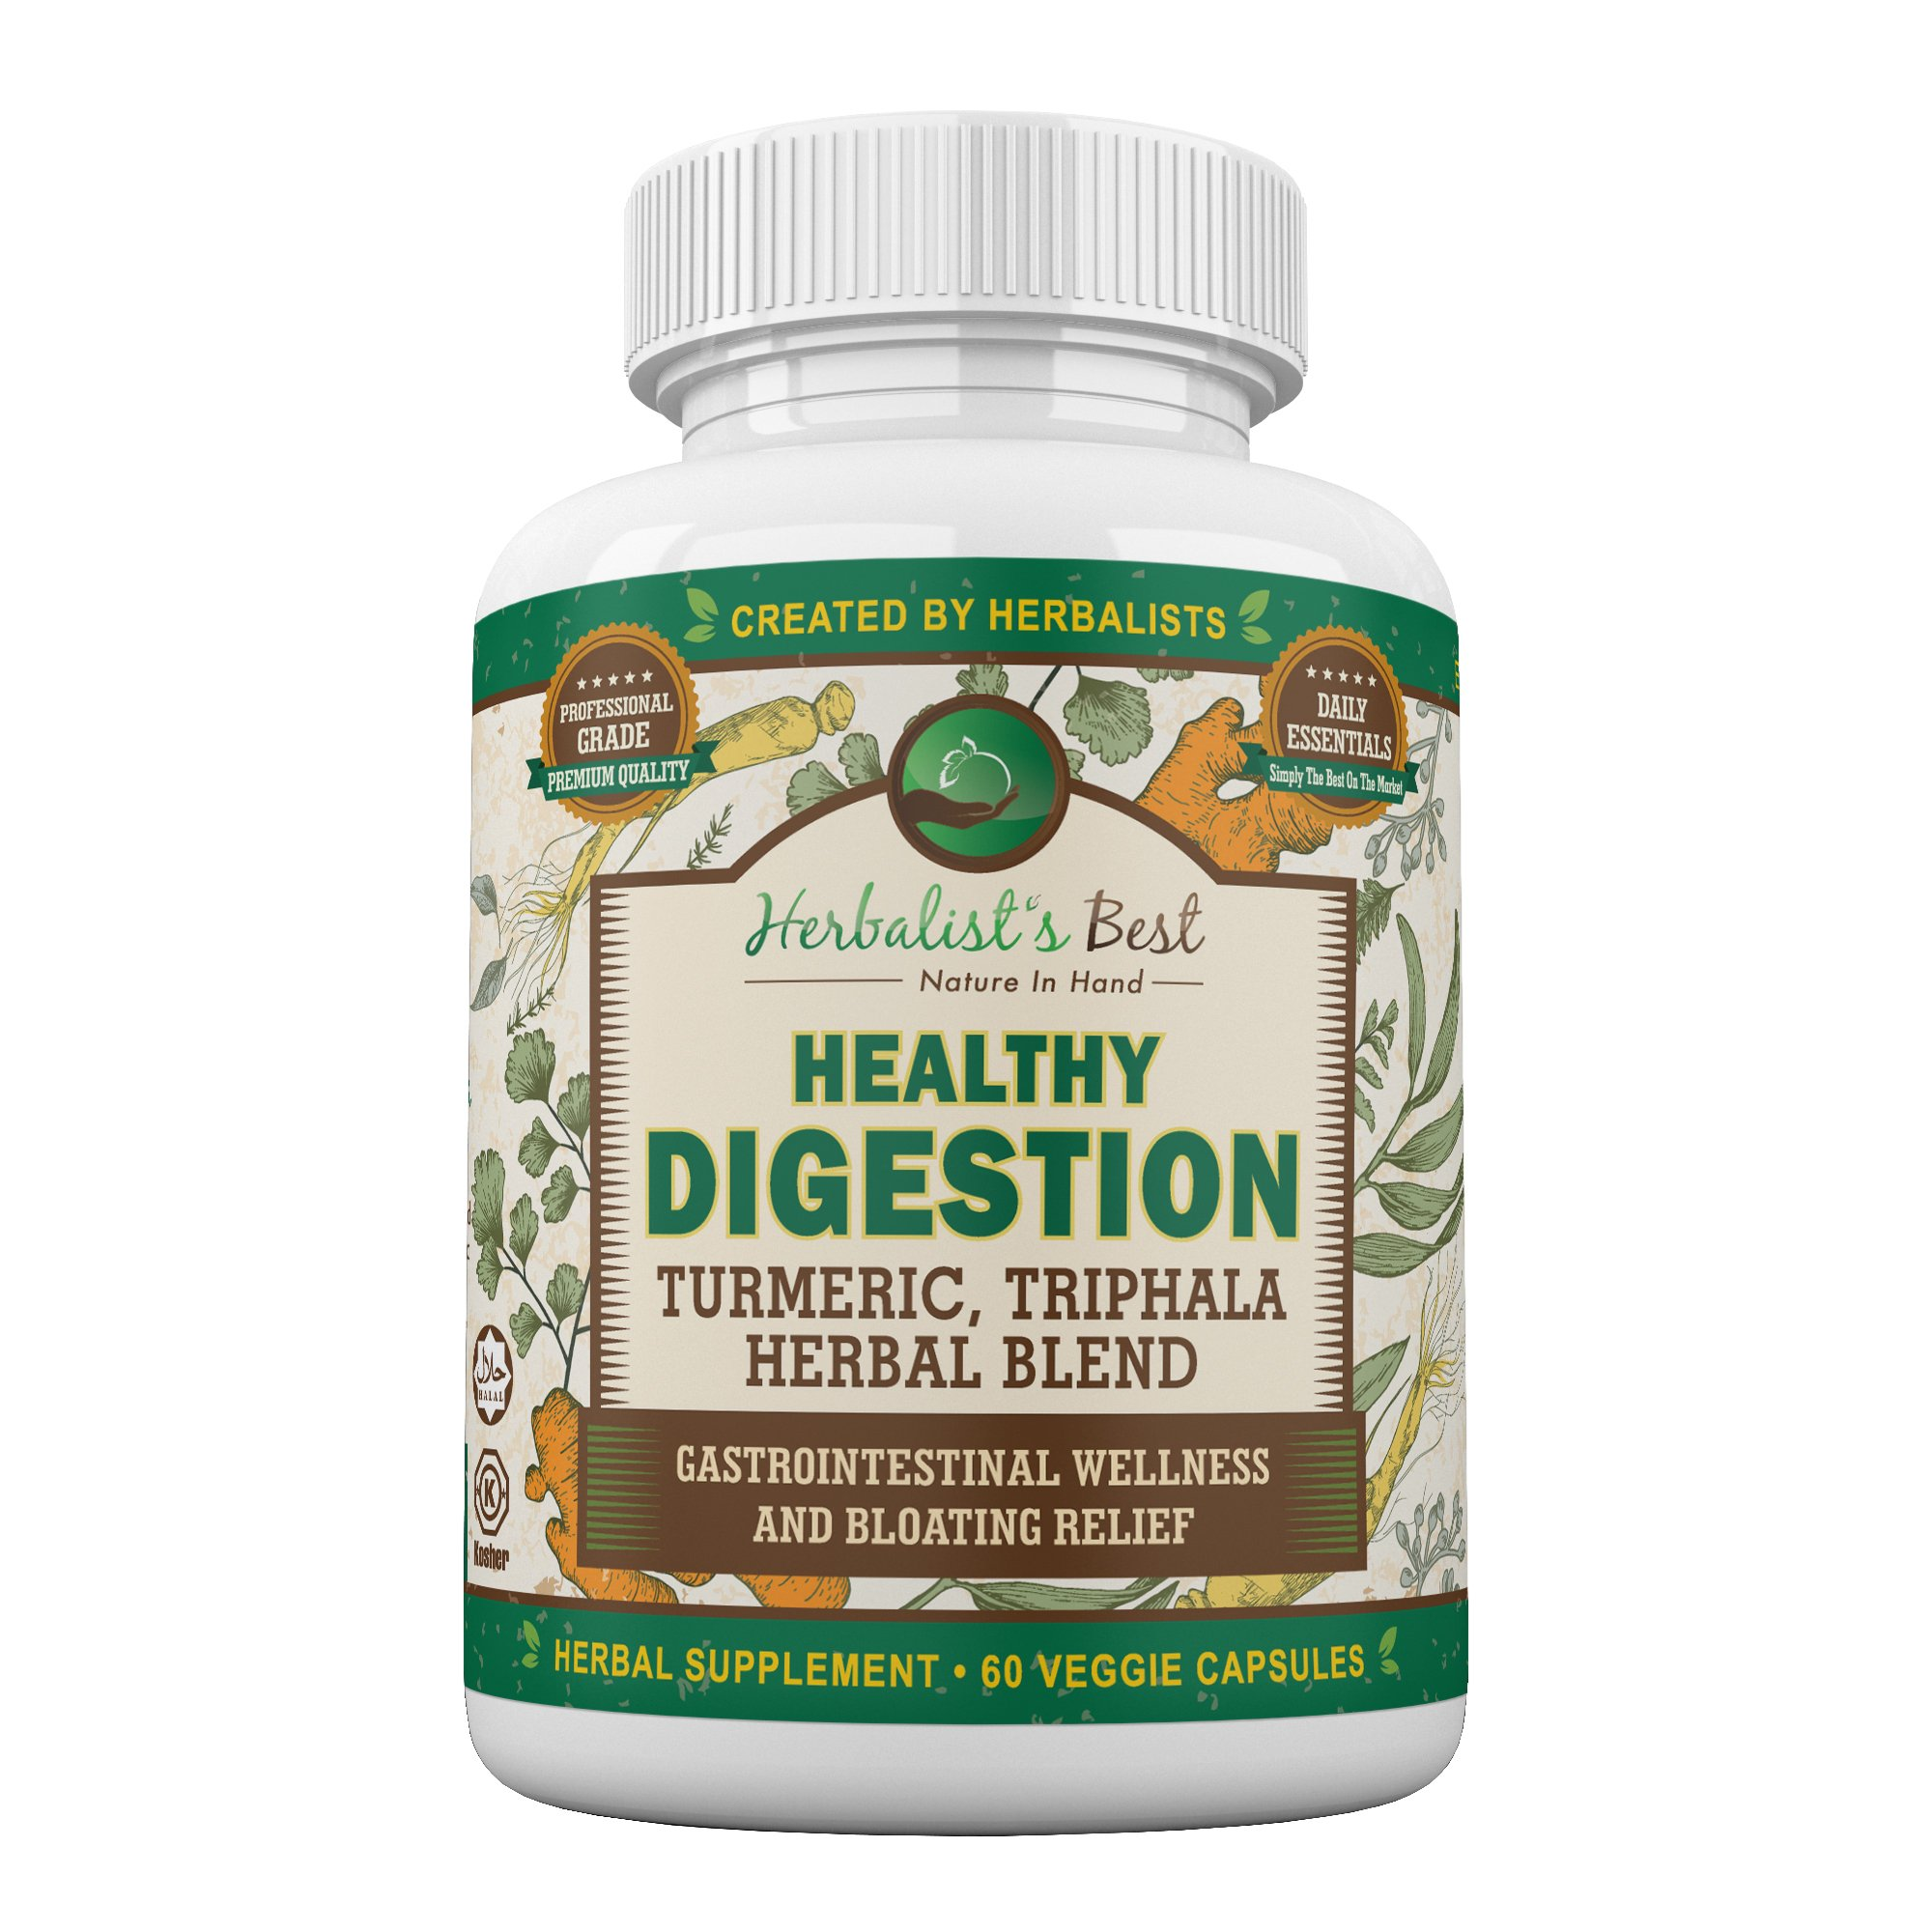 Healthy Digestion Restores Gut Health I Turmeric Triphala Yellow Dock Aid Colon Cleanse Liver Detox Arthritis Bloating Gas I Probiotic Alternative I Boost GI Tract Wellness by Herbalist's Best (1) by Herbalist's Best